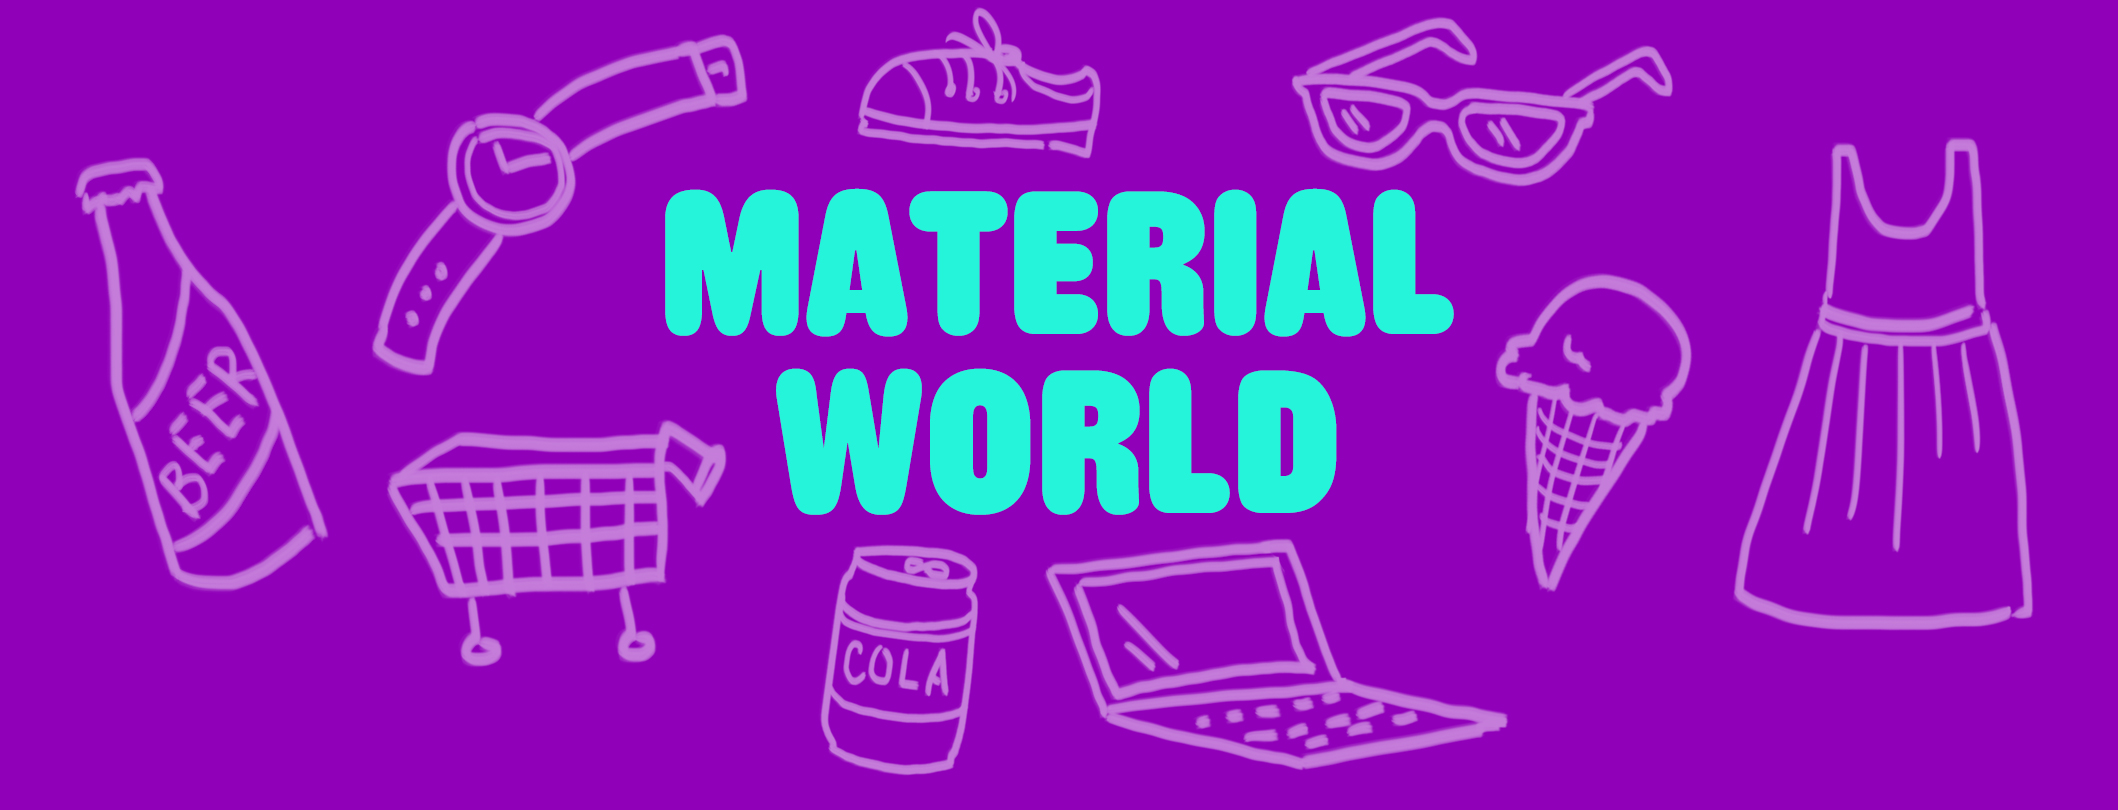 material world Download past episodes or subscribe to future episodes of material world by bloomberg for free.